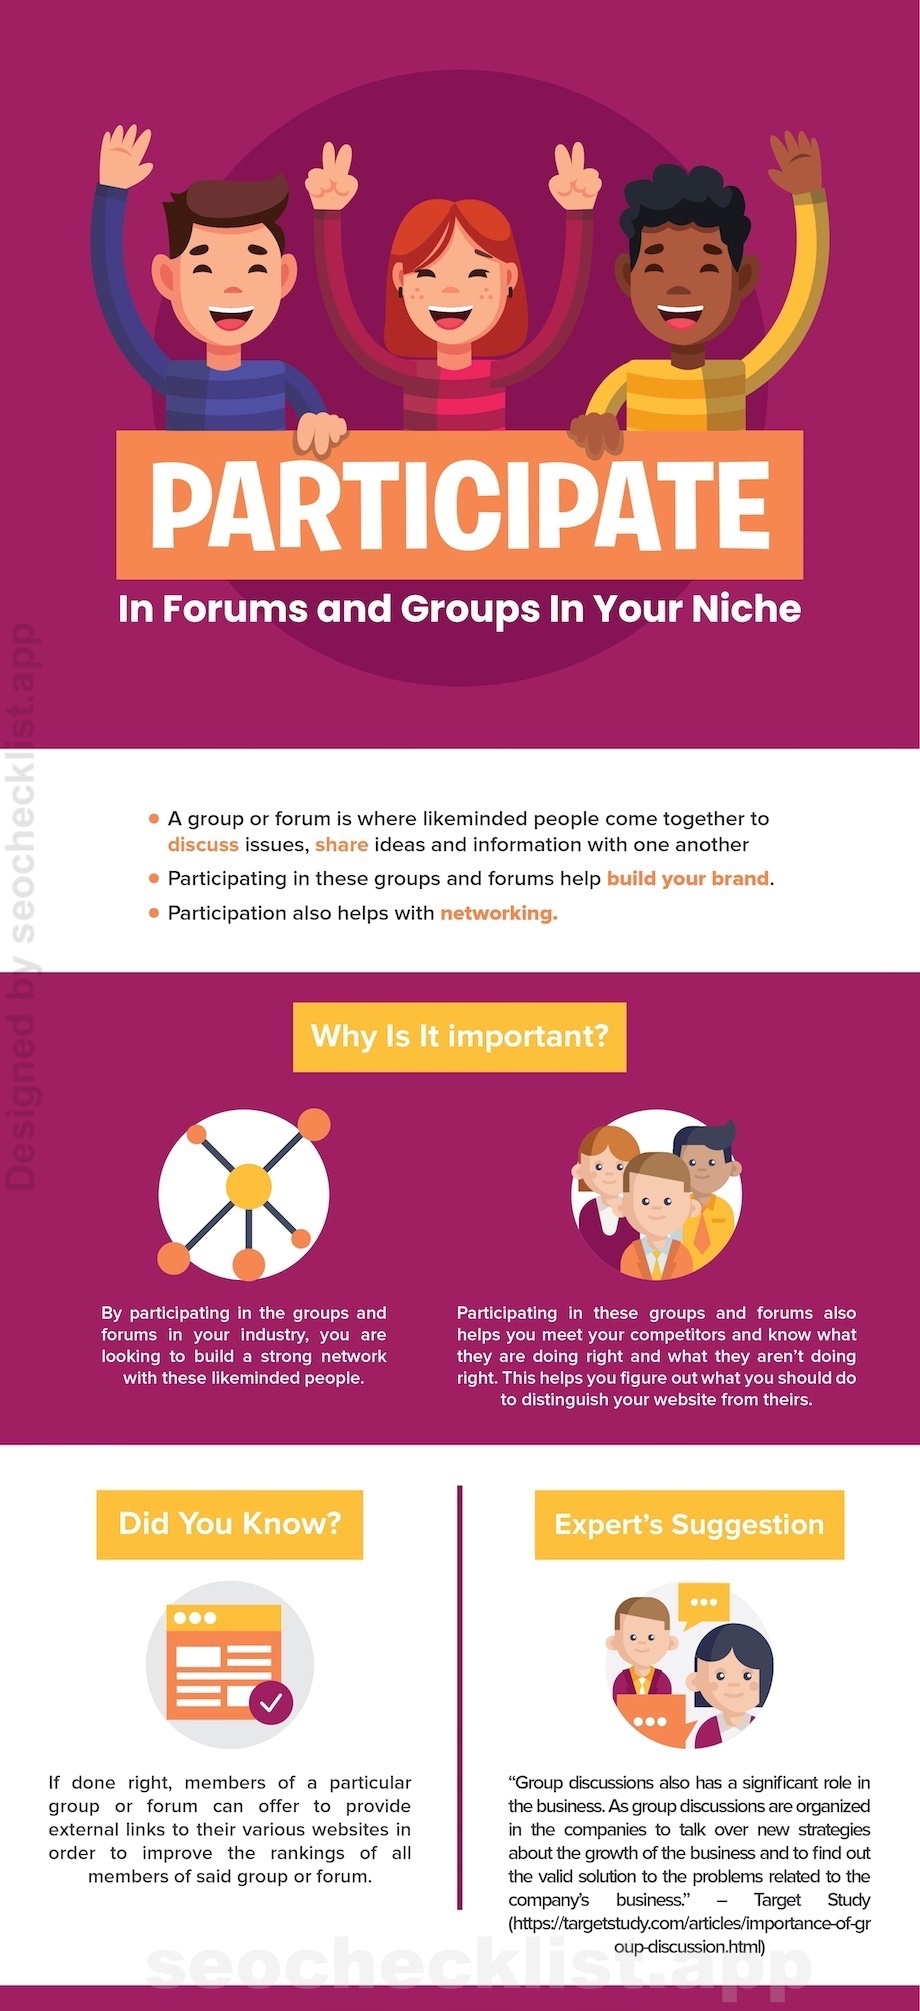 Participate In Forums and Groups In Your Niche